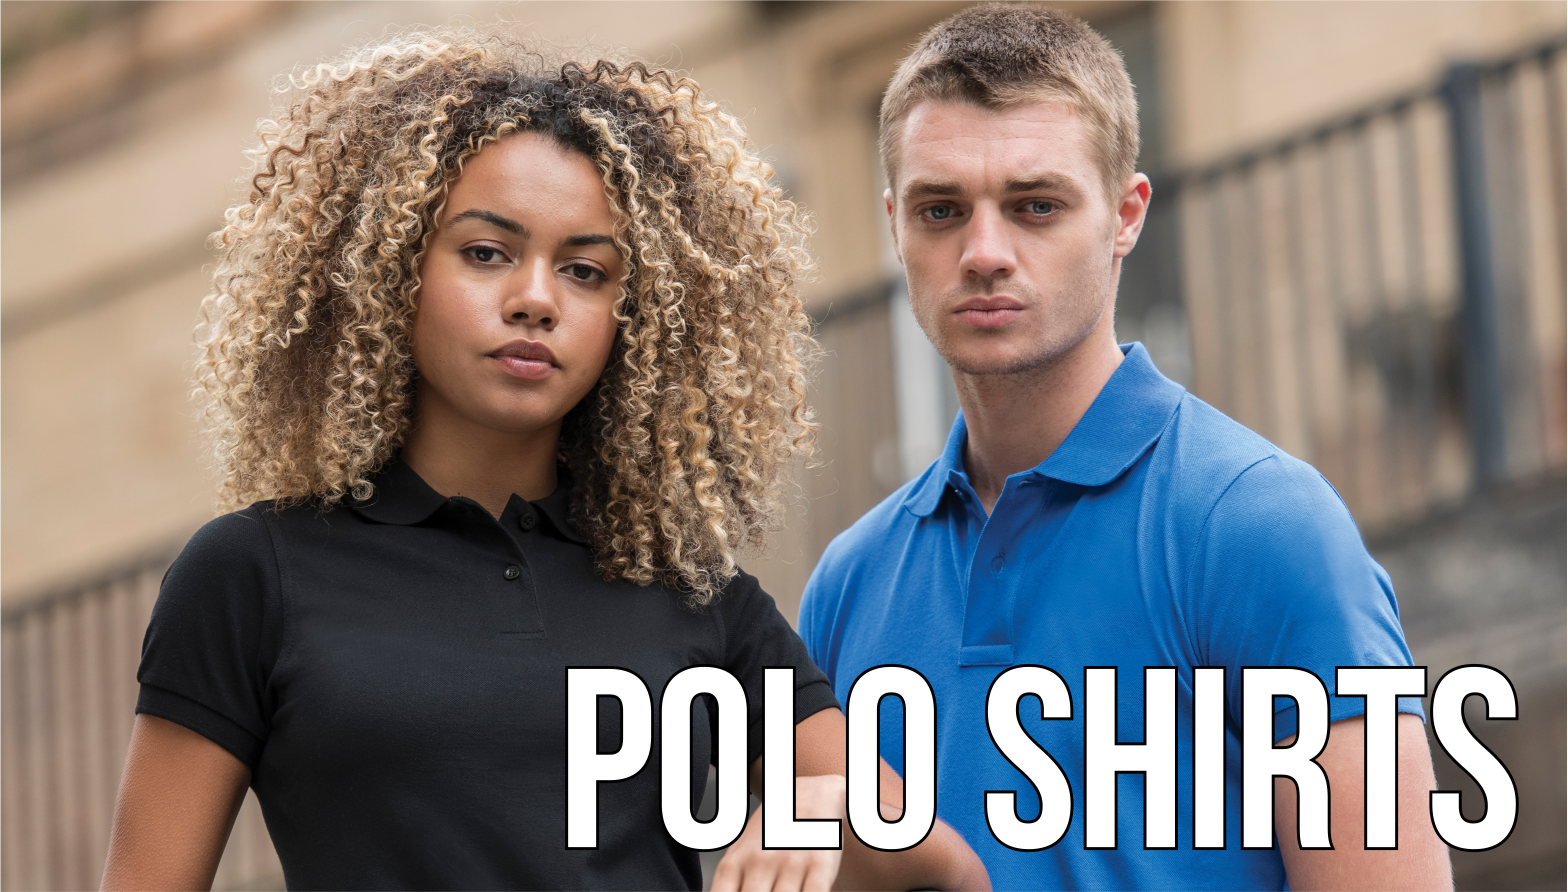 polo-shirts-banner.png